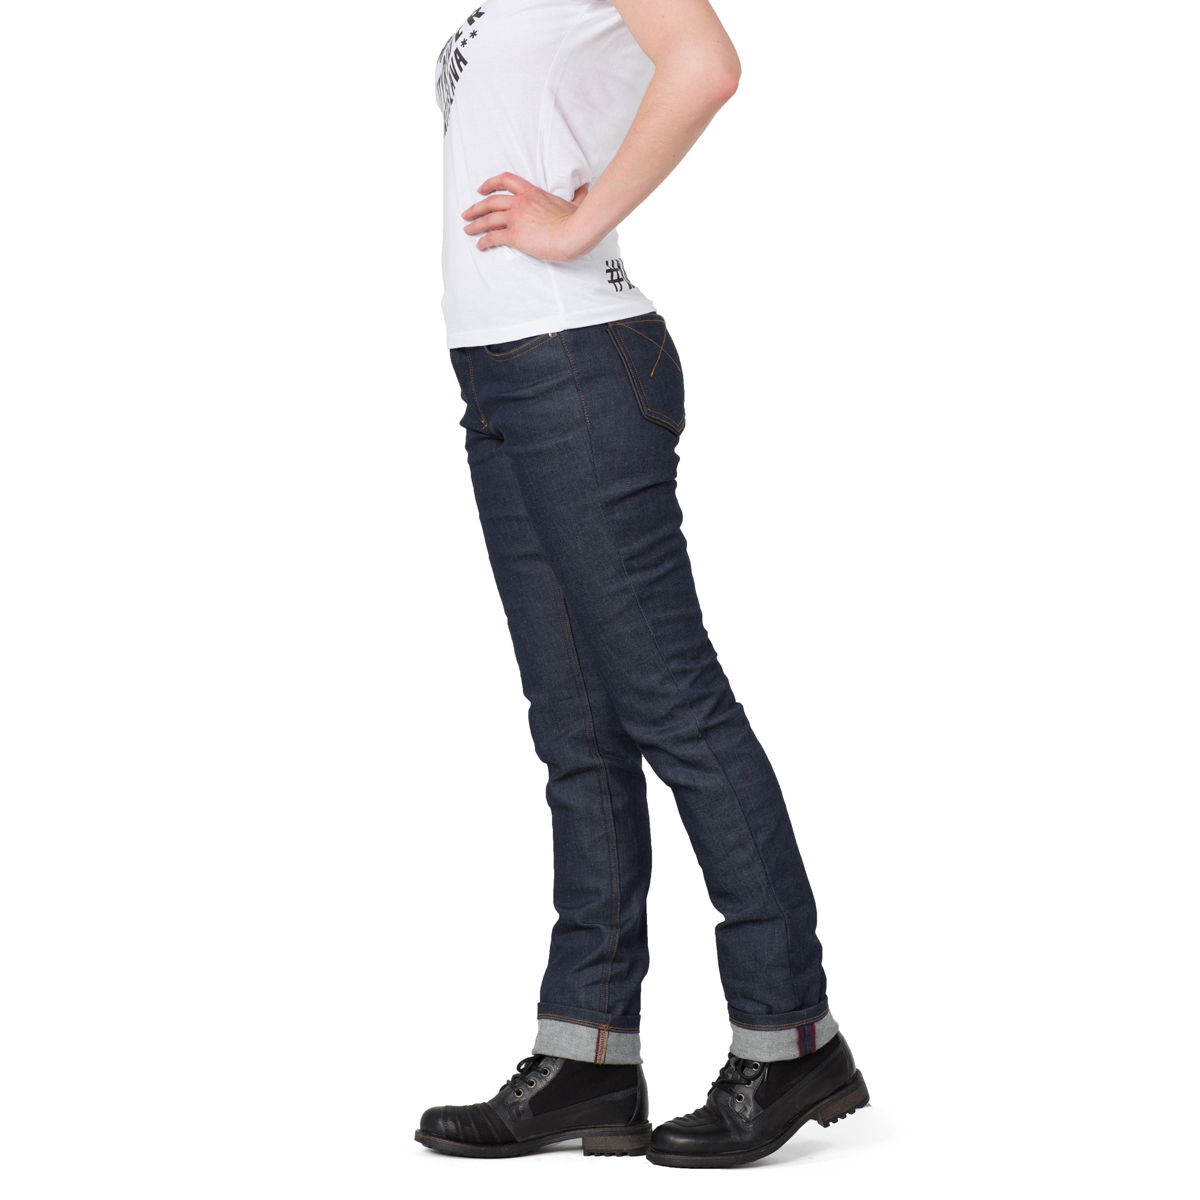 klm-wear-SARANDA-Slim-Womens-Jeans